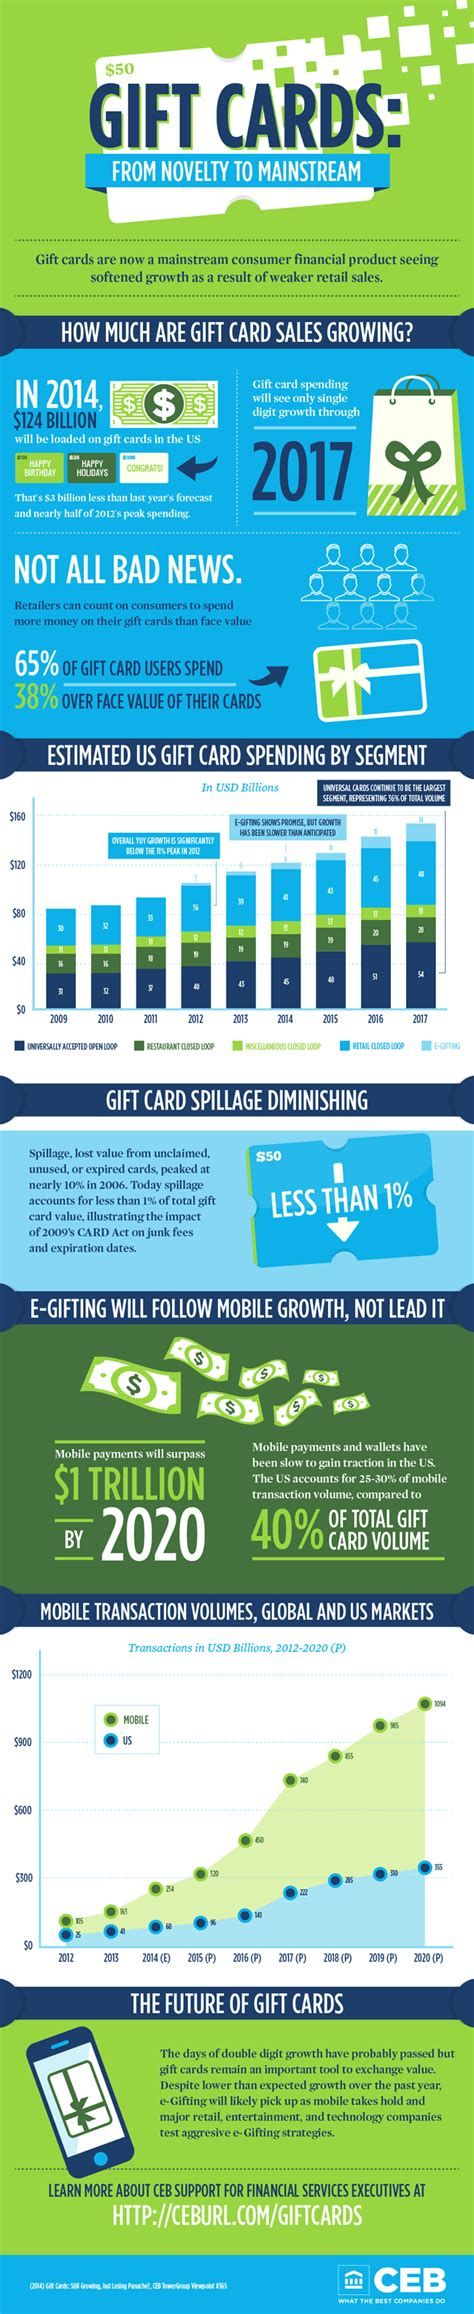 Gift Card Industry - profiting from the 120 billion gift card industry